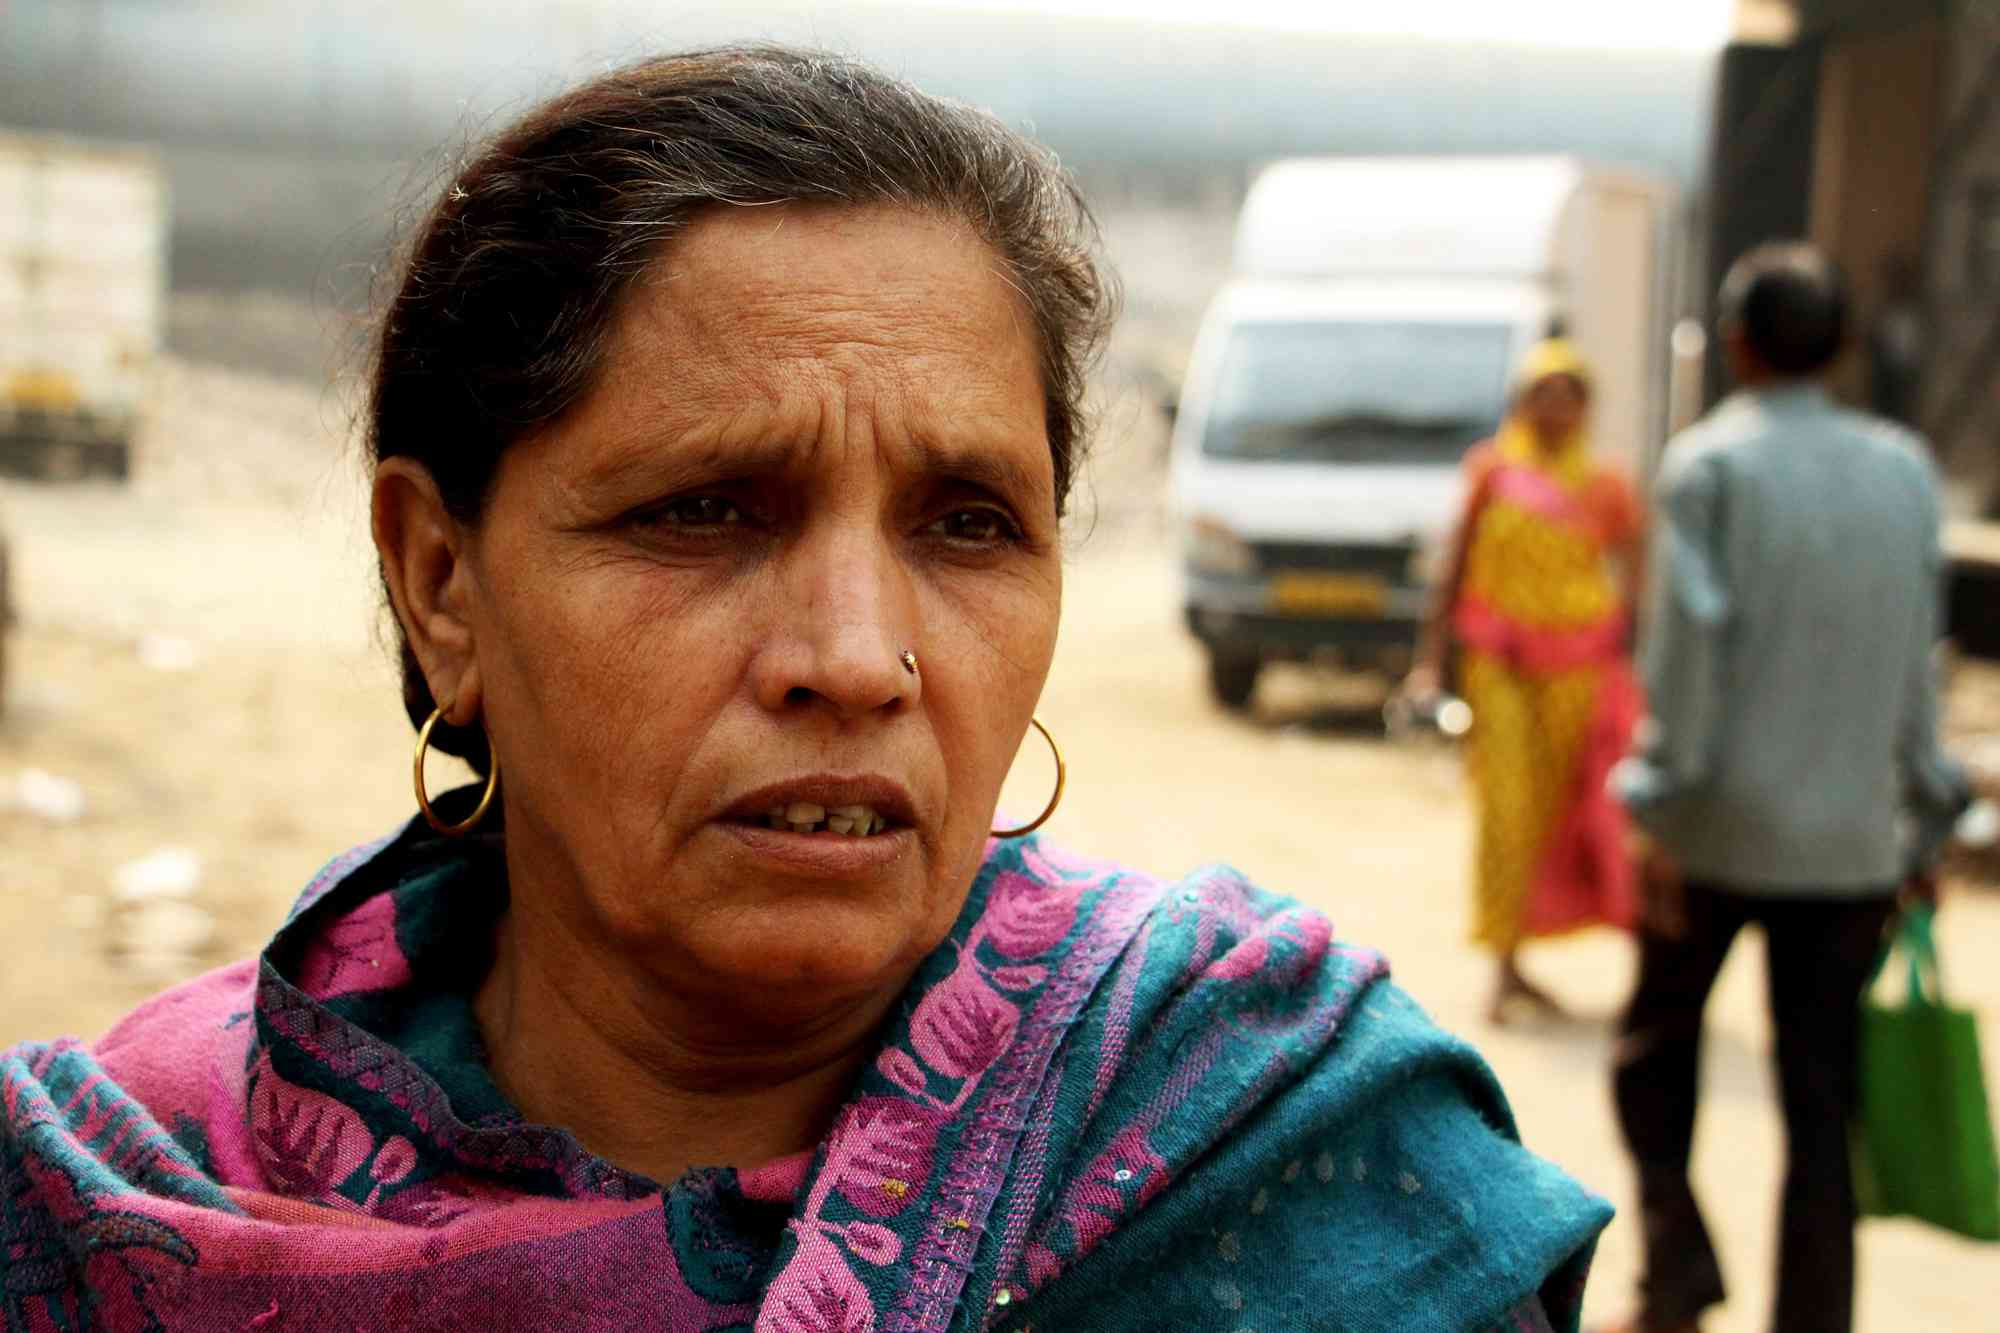 Kamla Devi has lived in Bhalswa since 1972.